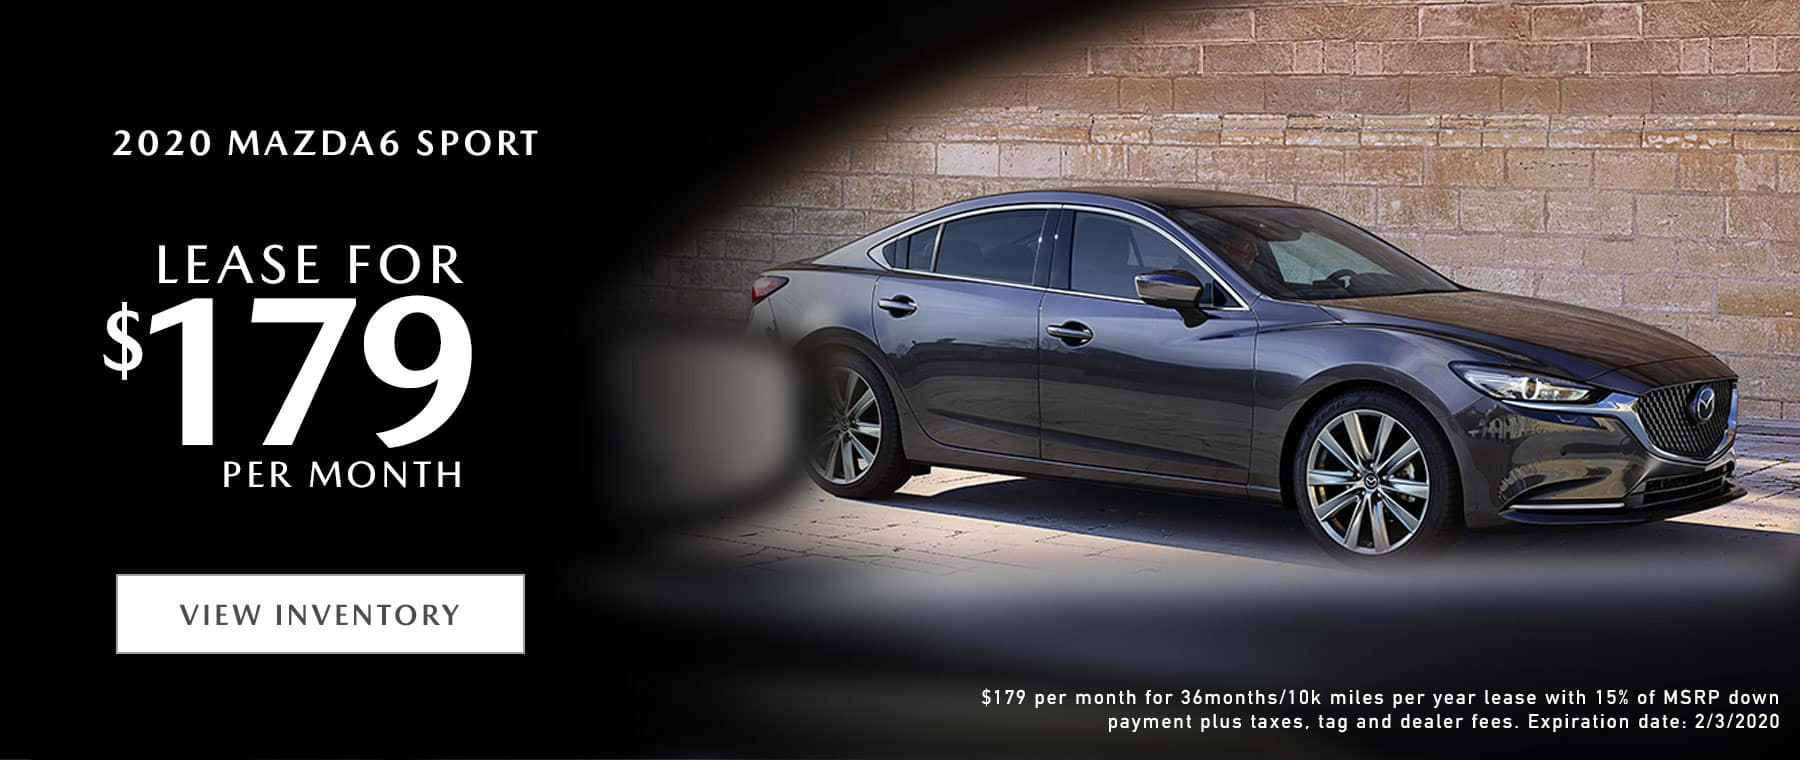 2020 Mazda6 Sport Lease Offer | Mazda of Fort Walton Beach